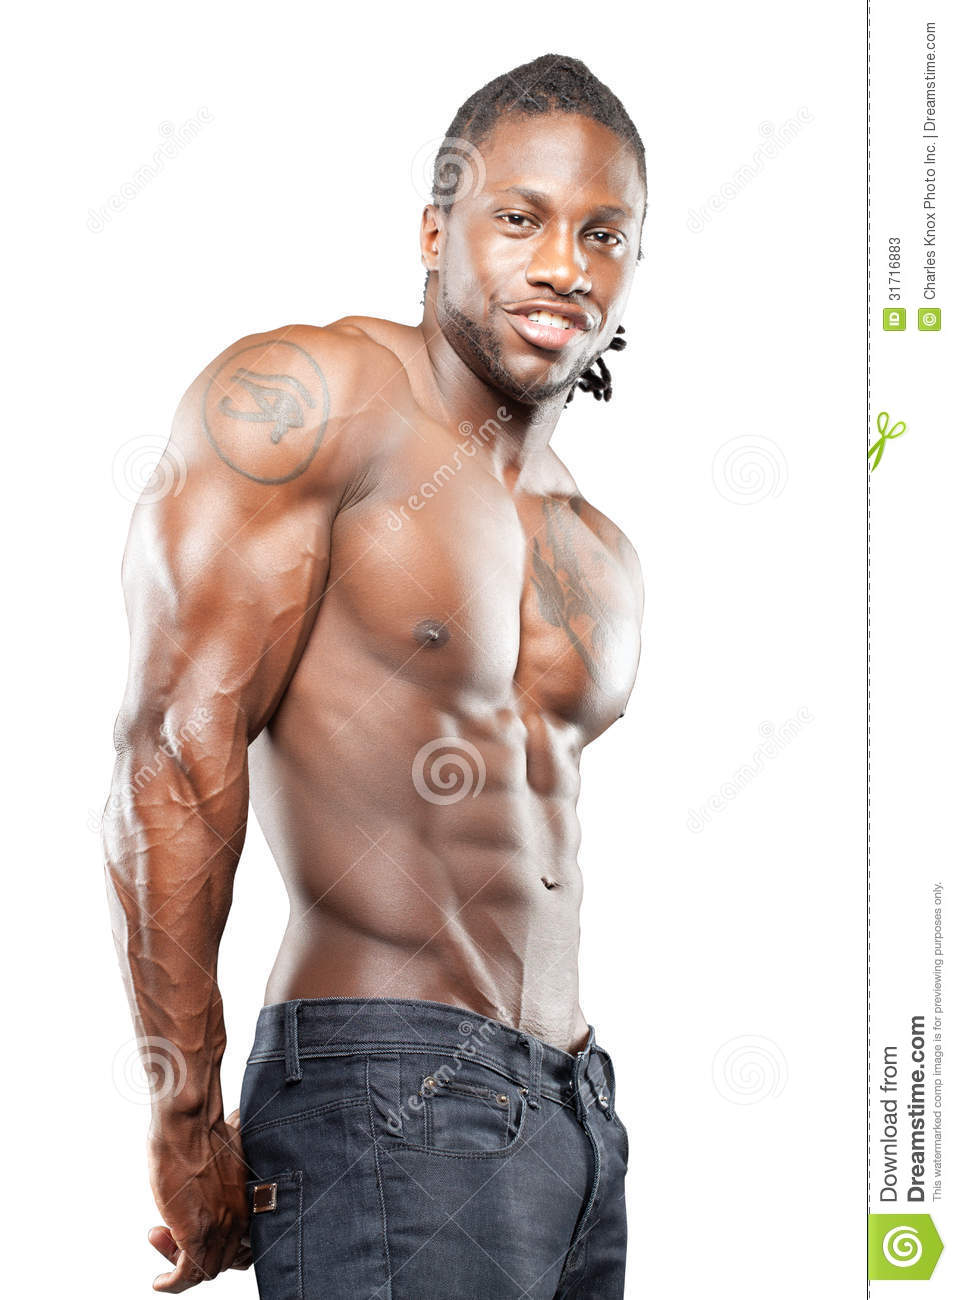 Black fitness model in jeans with no shirt flexing muscles.